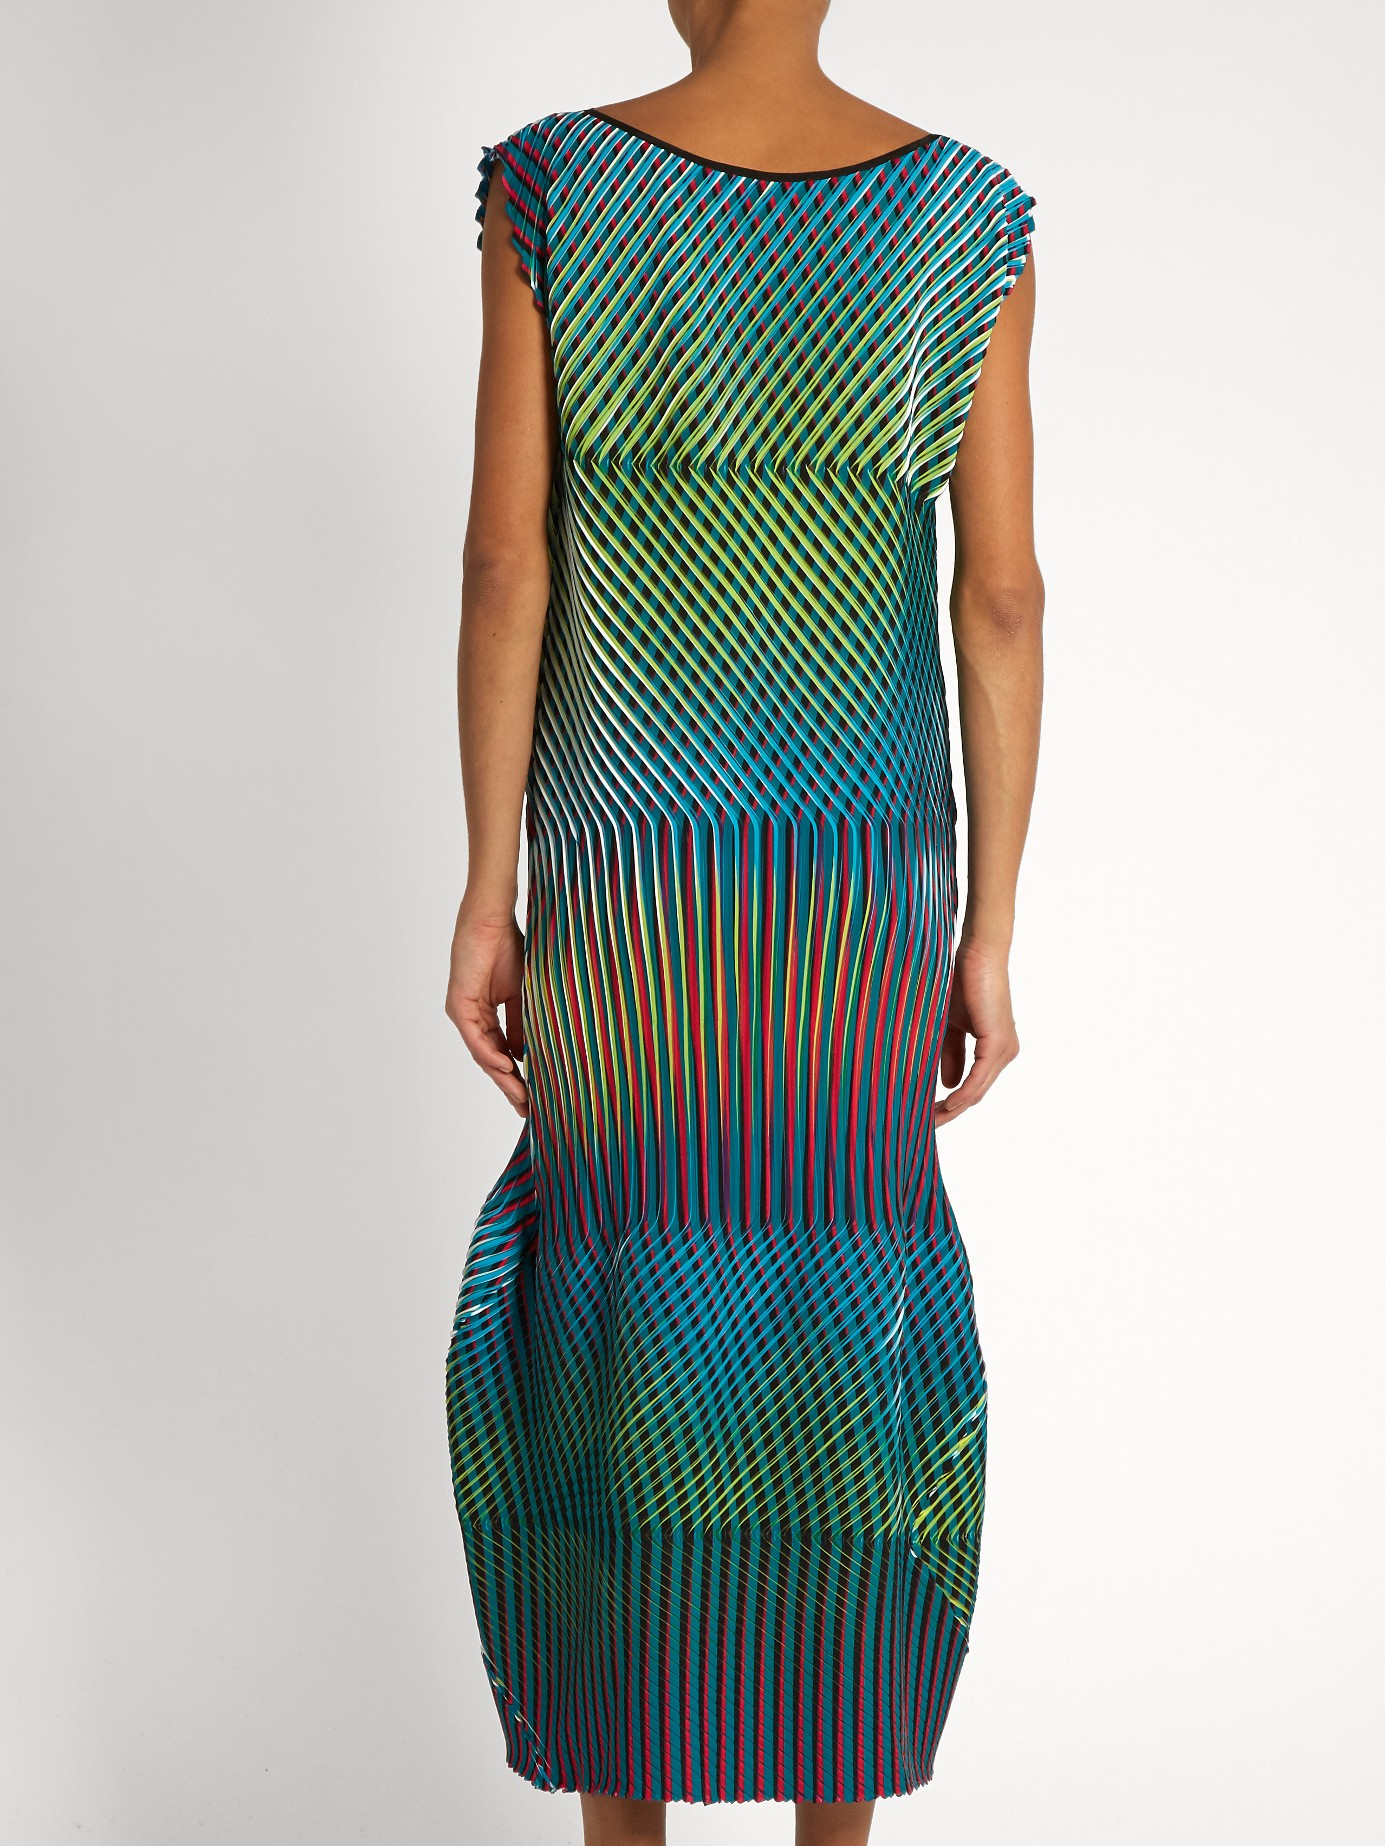 Clothing By Baking It In An Oven By Issey Miyake: Issey Miyake Prism 2 Striped And Pleated Midi Dress